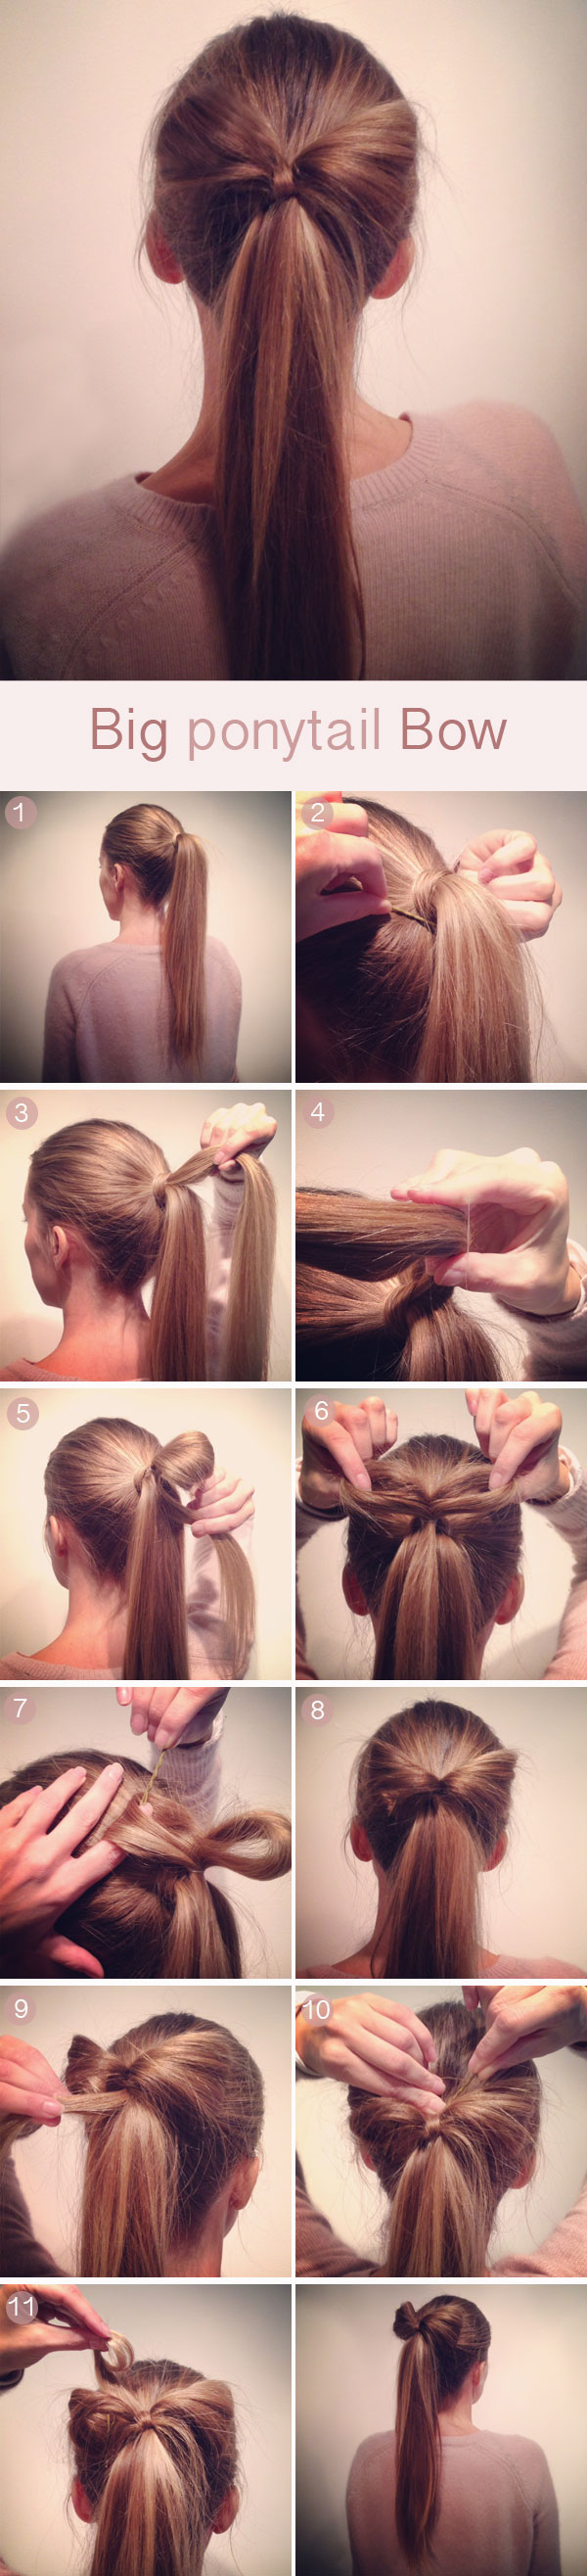 Big Ponytail Hair Bow hairtstyle tutorial